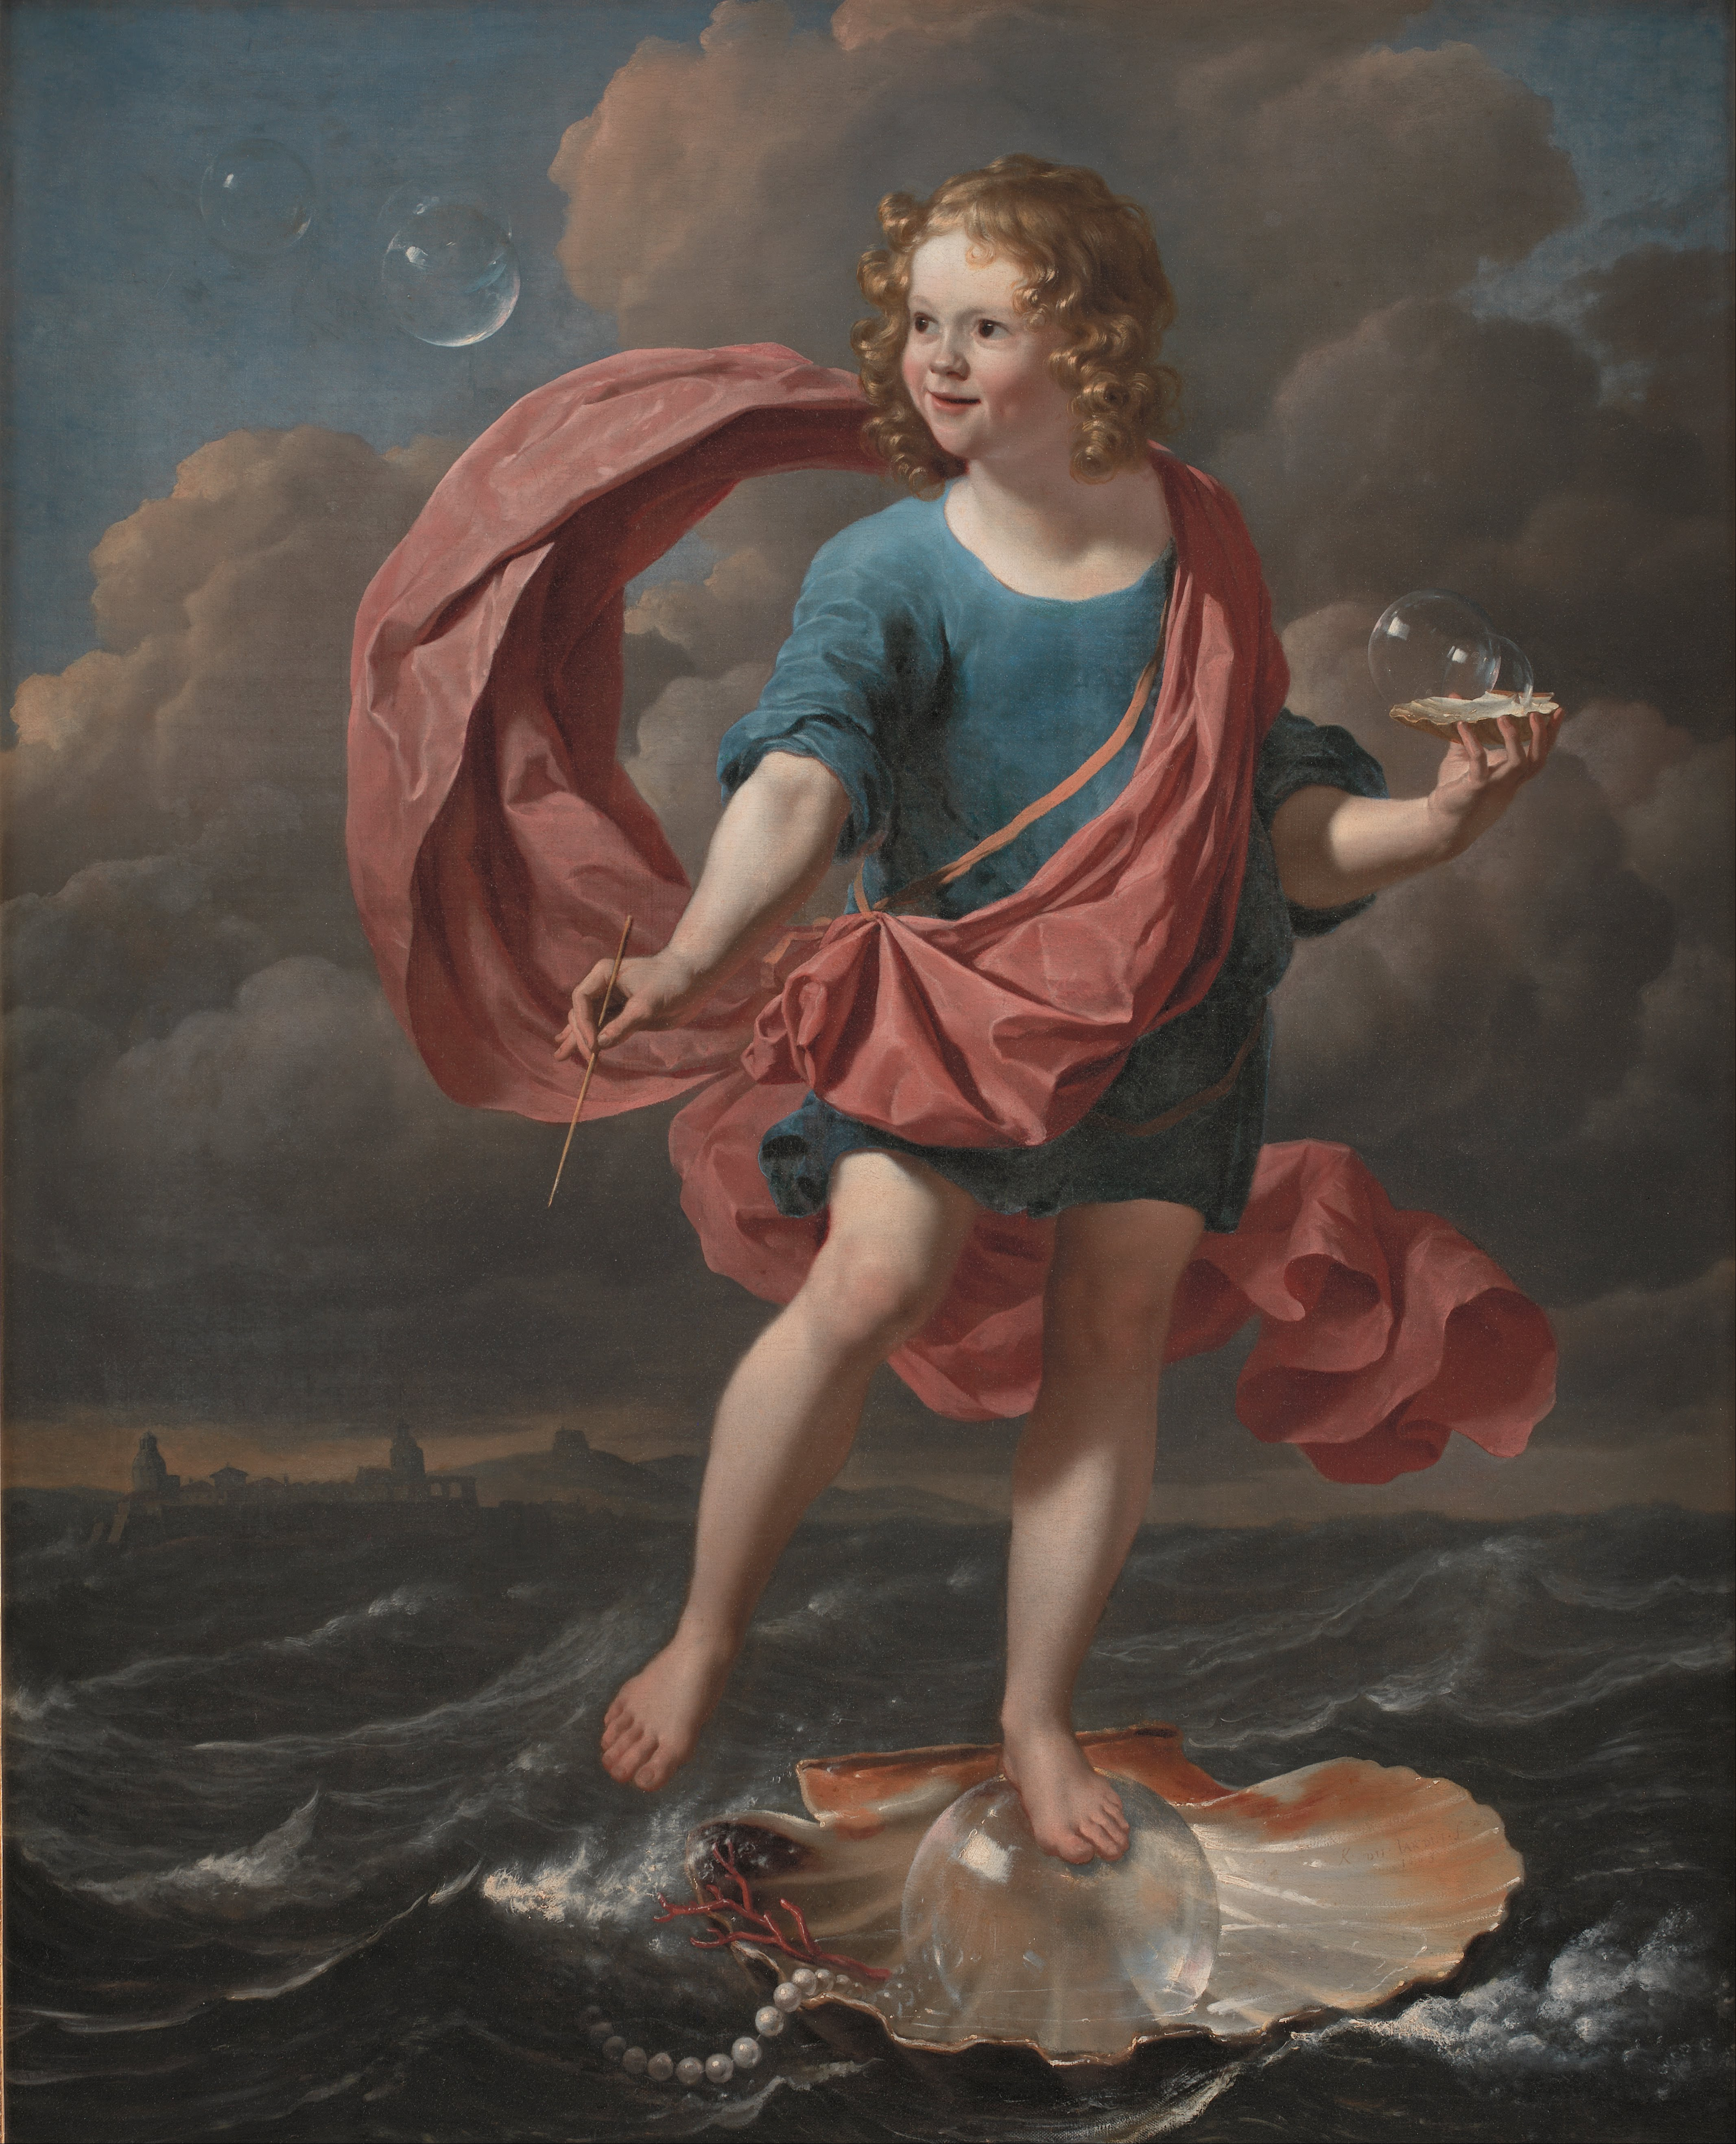 Karel_Dujardin_-_Boy_Blowing_Soap_Bubbles._Allegory_on_the_Transitoriness_and_the_Brevity_of_Life_-_Google_Art_Project